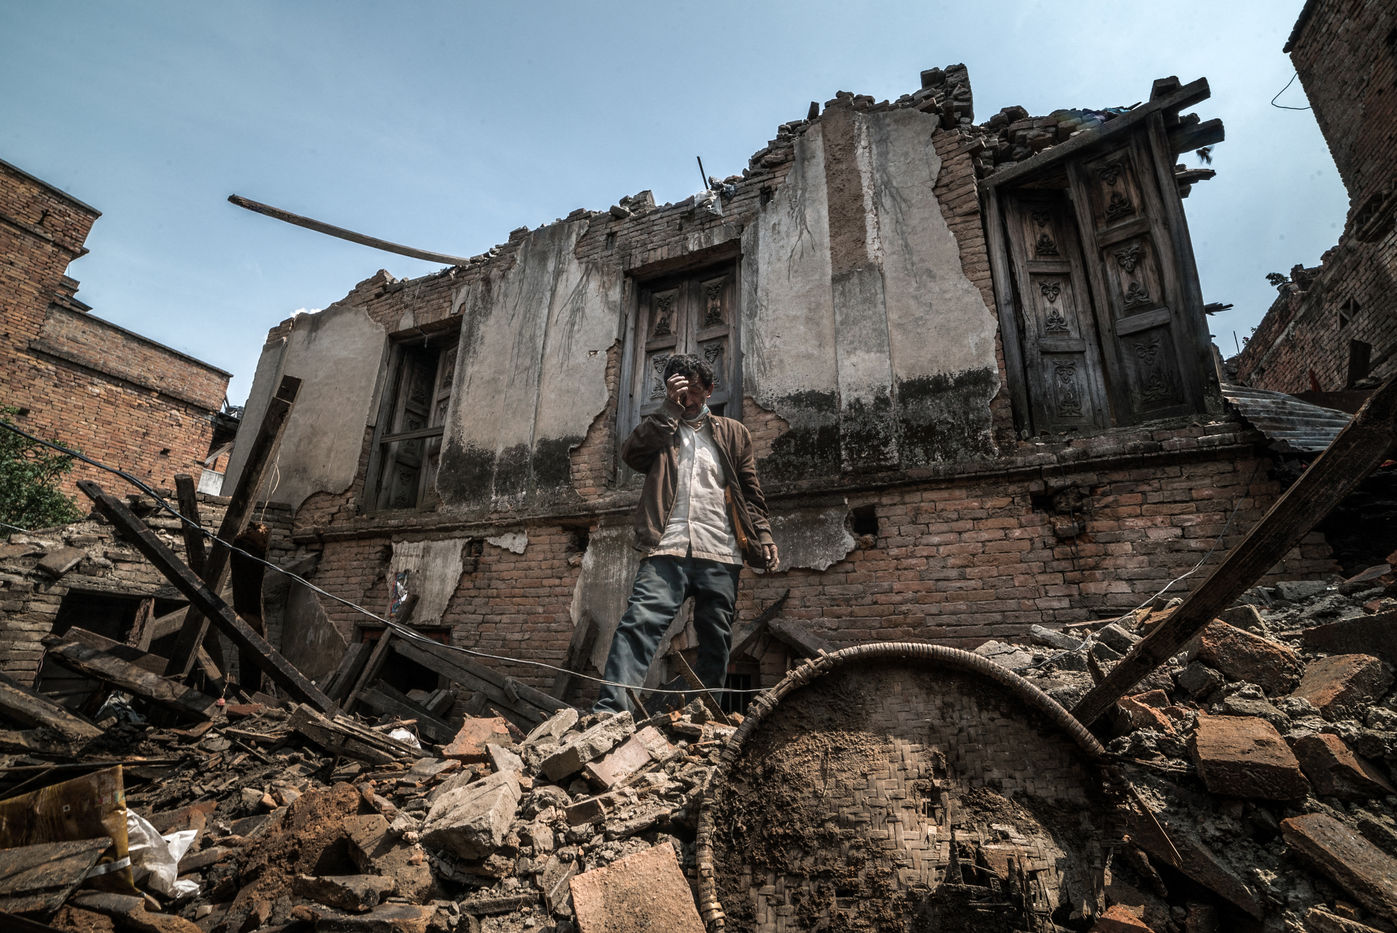 NEPAL EARTHQUAKE 2015 - AFTERMATH